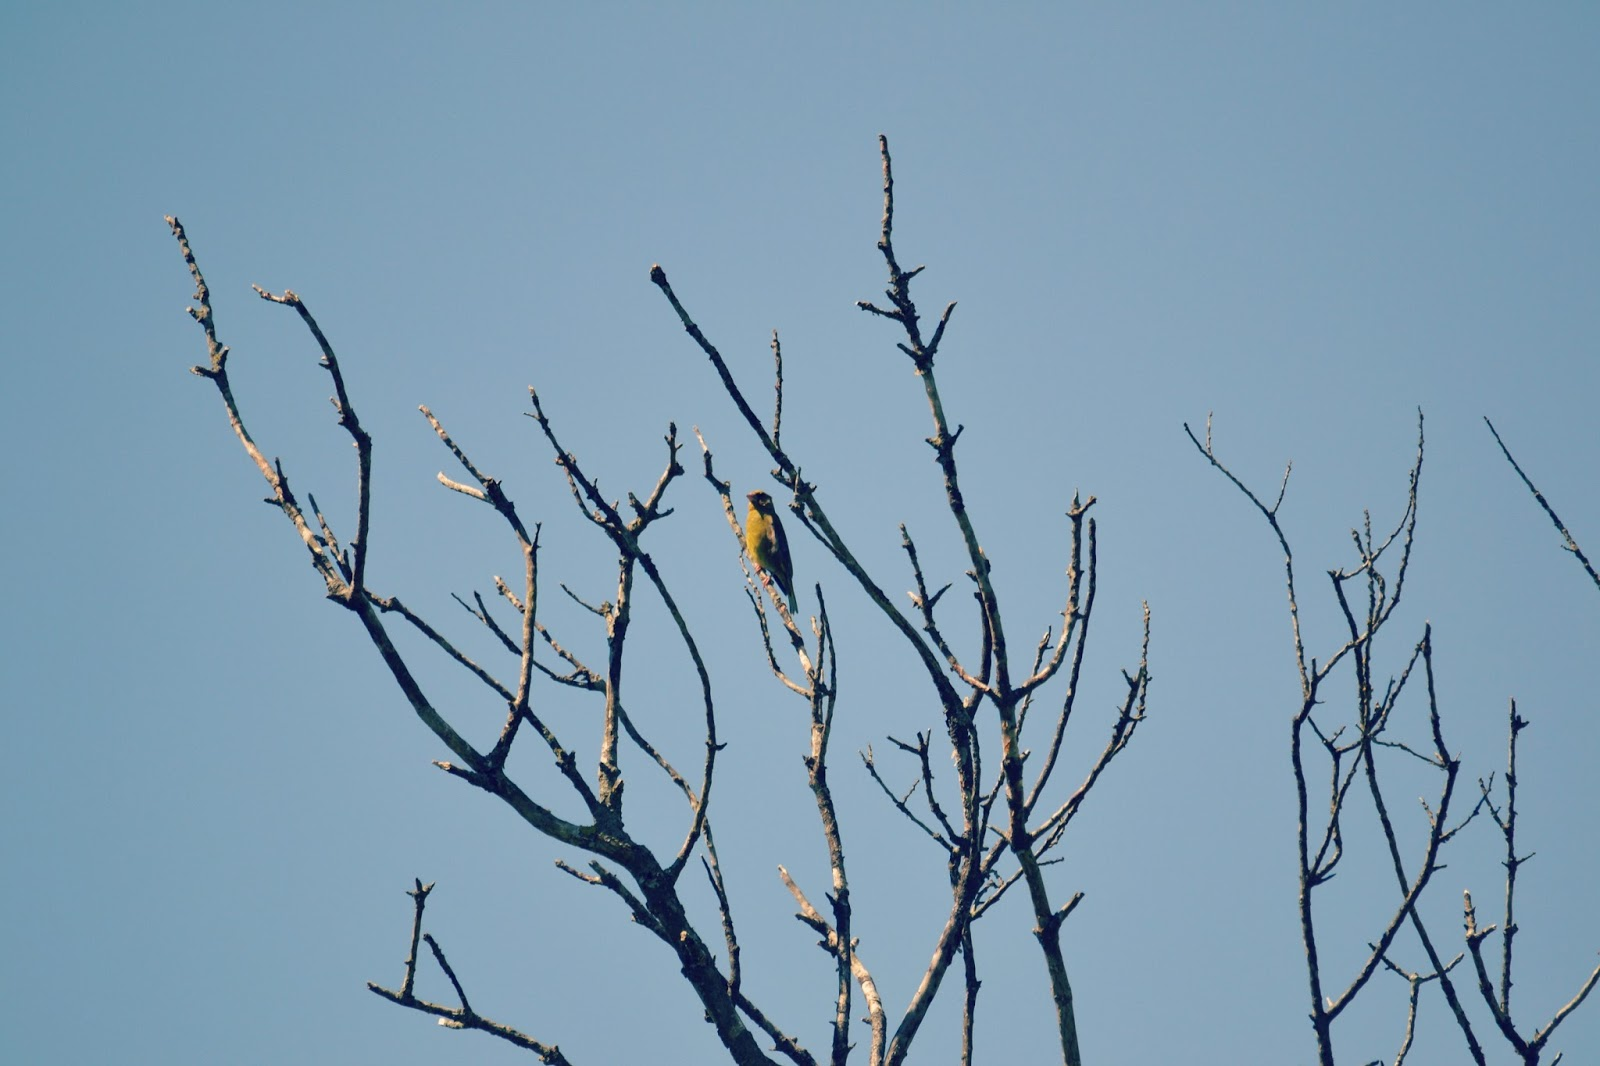 greenfinch in bristol